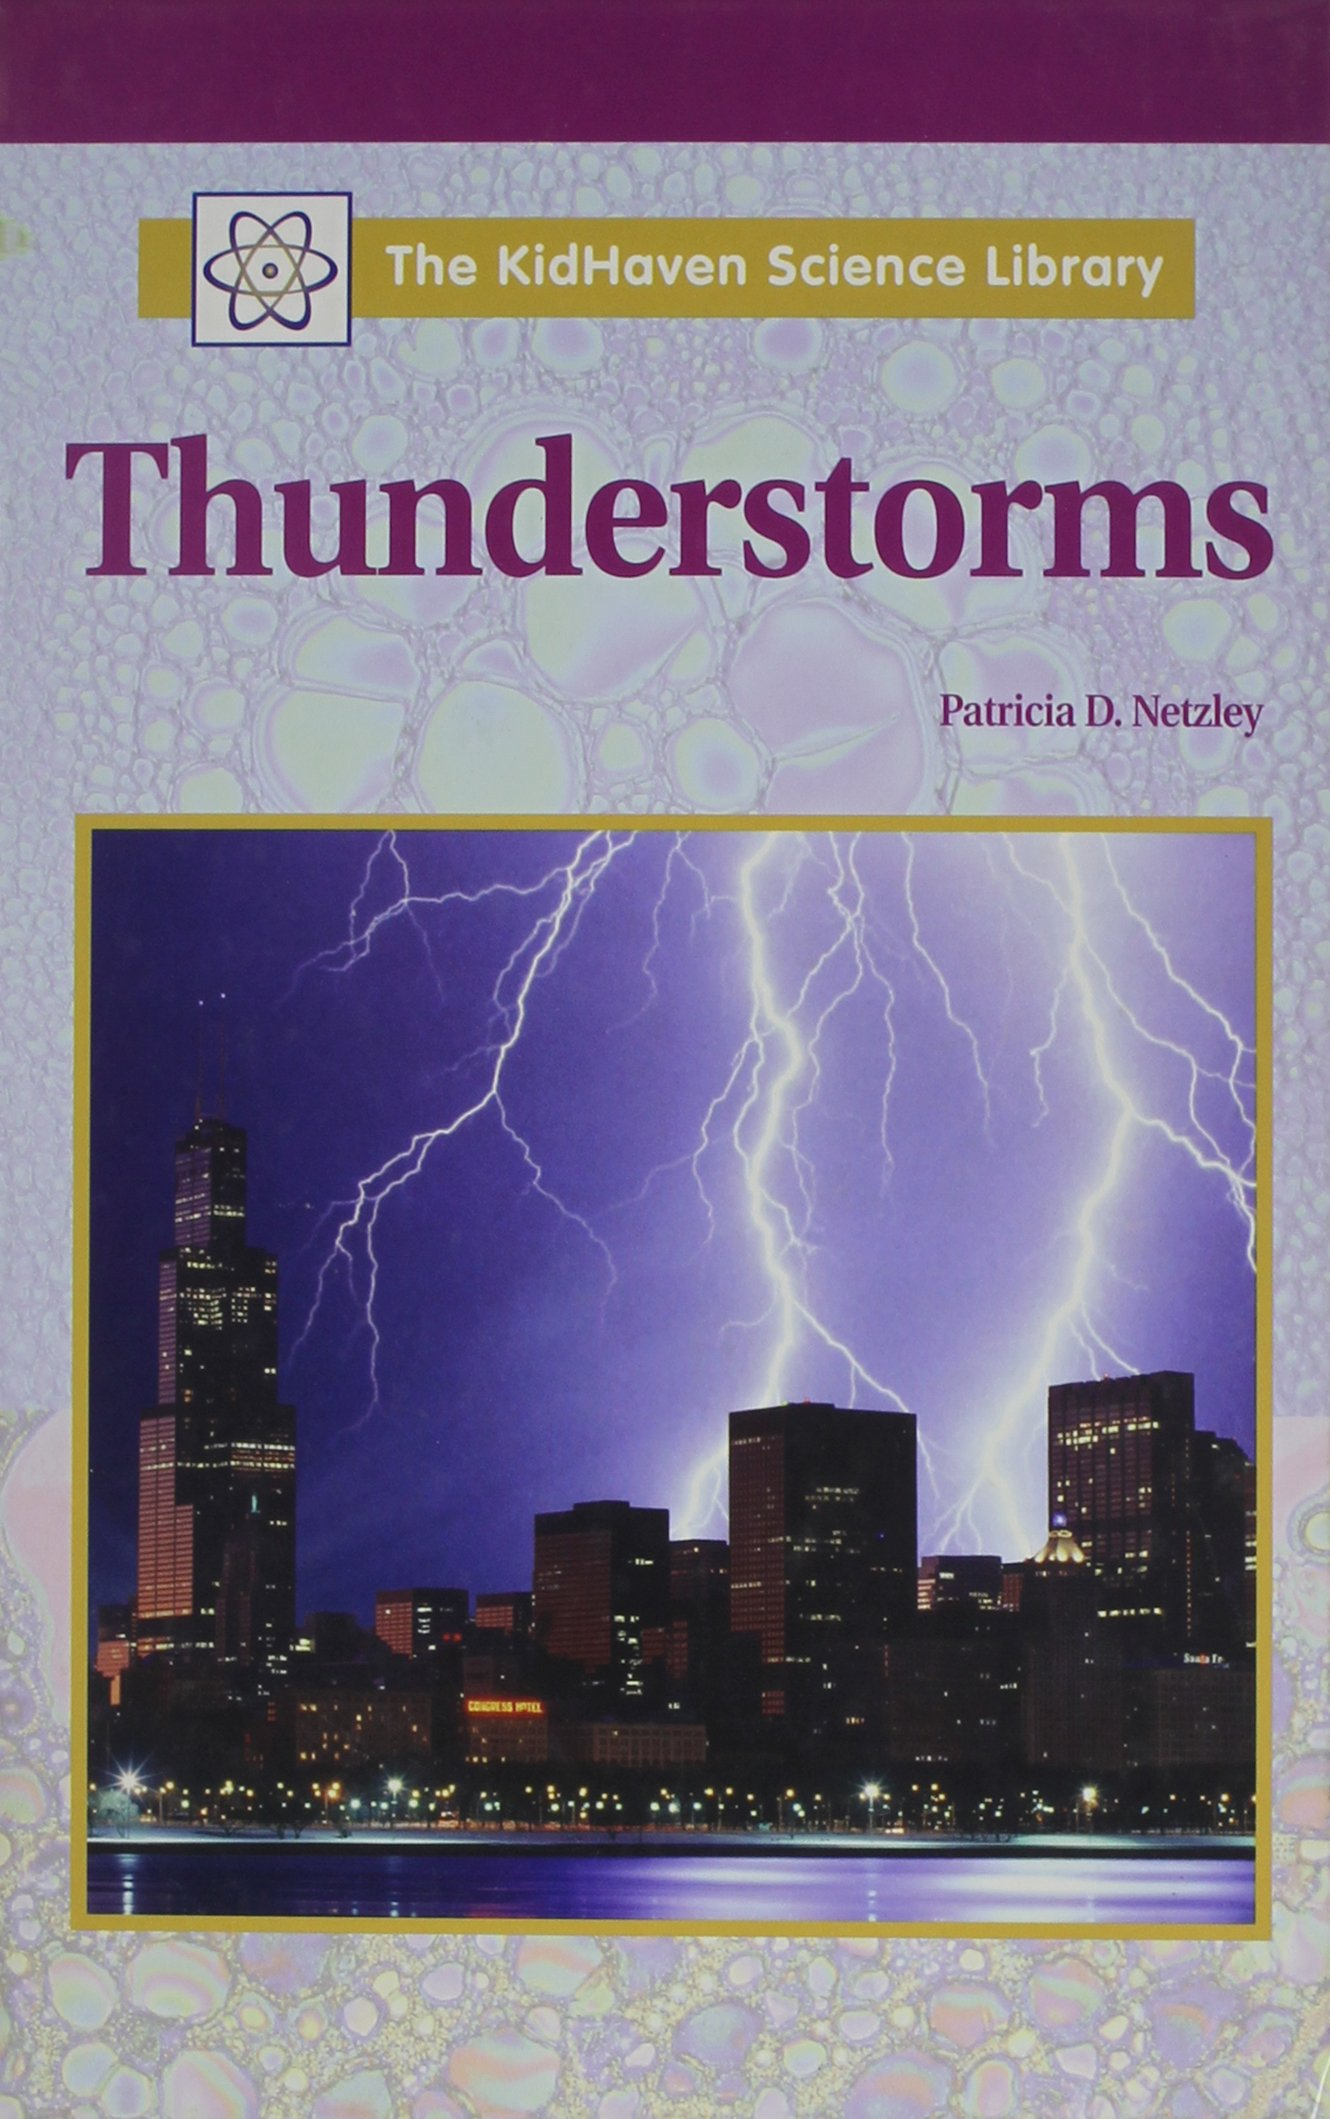 The KidHaven Science Library - Thunderstorms ebook